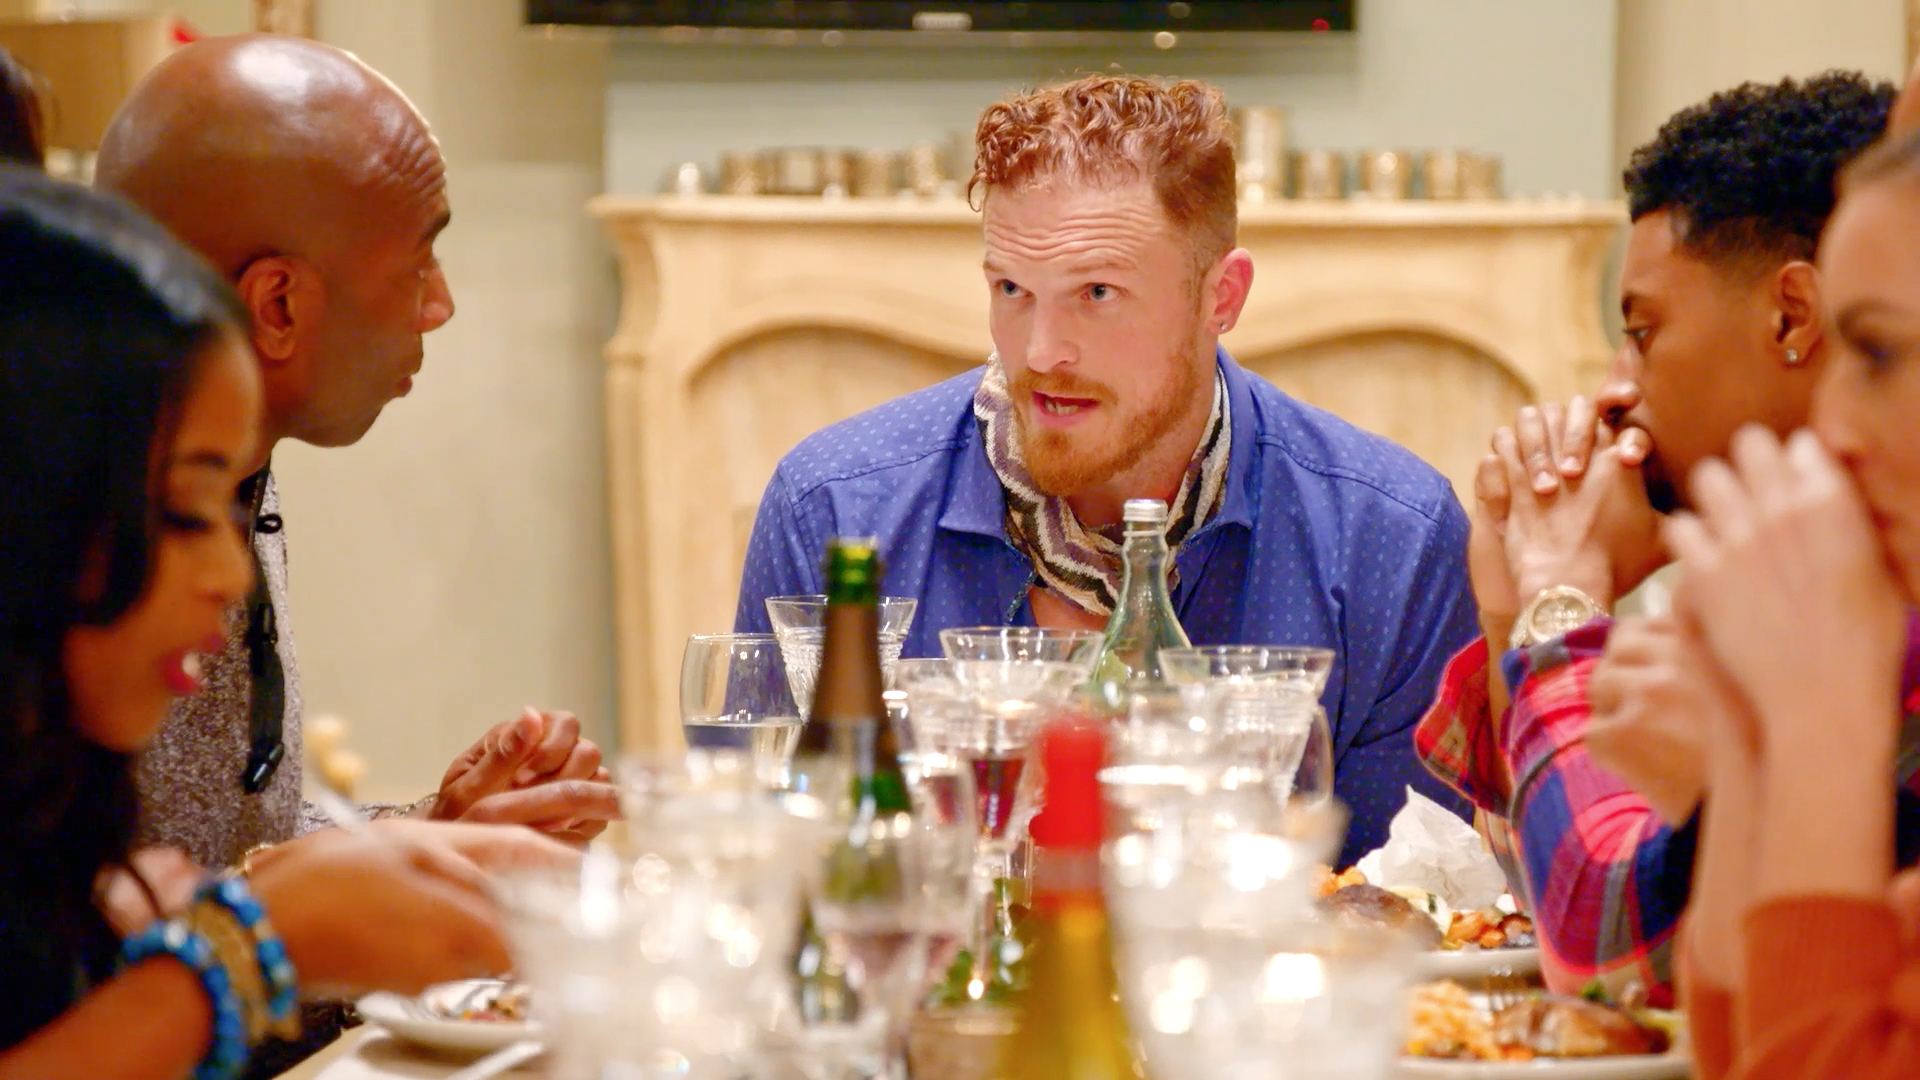 Things Get Awkward at Jeff Charleston's Friendsgiving